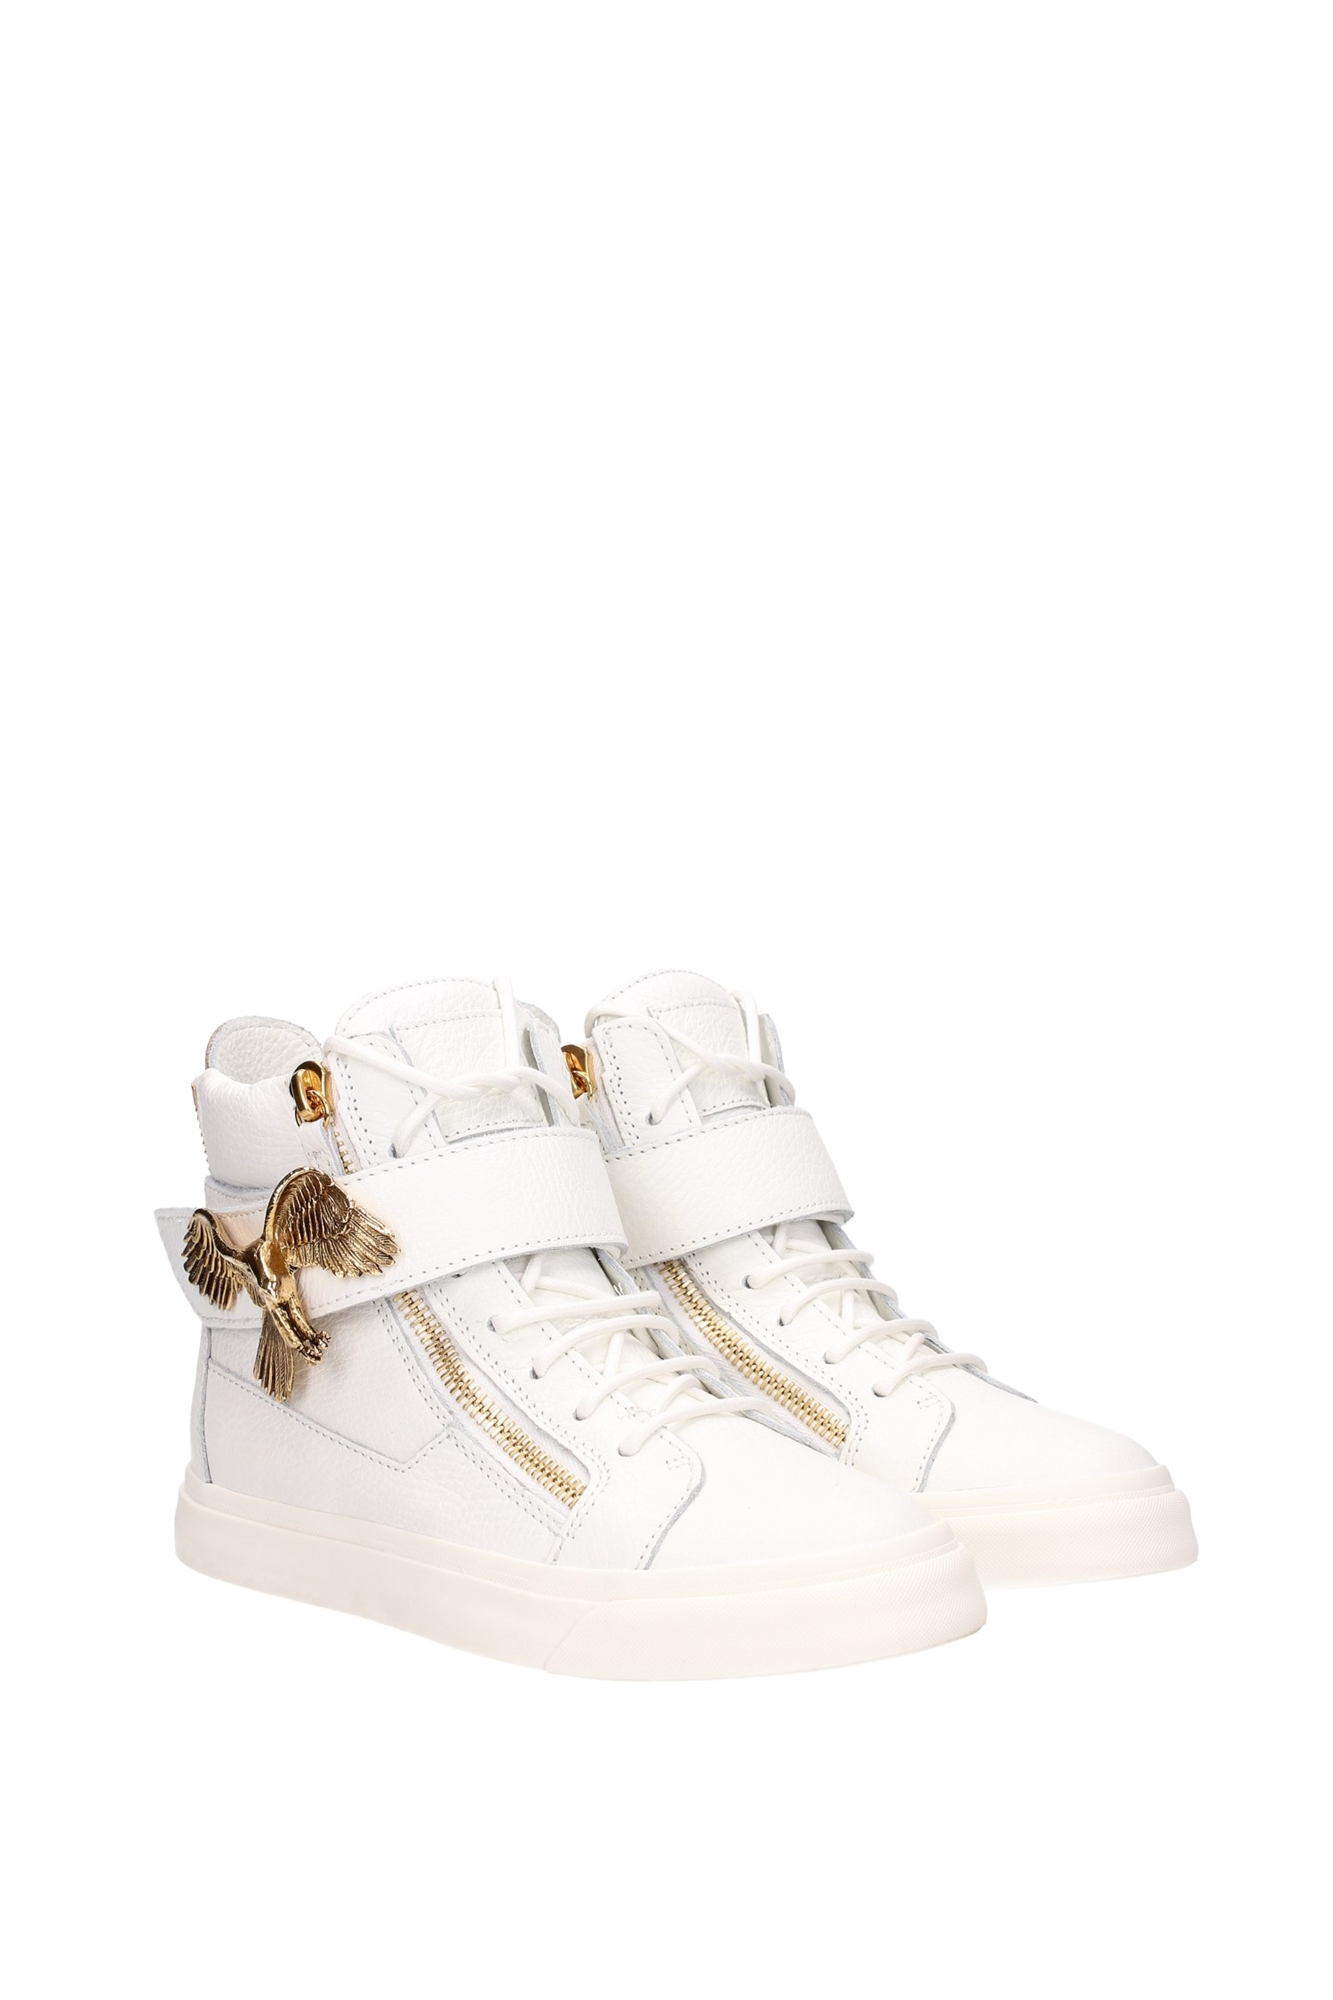 sneakers giuseppe zanotti damen leder wei rds428londonbianco ebay. Black Bedroom Furniture Sets. Home Design Ideas